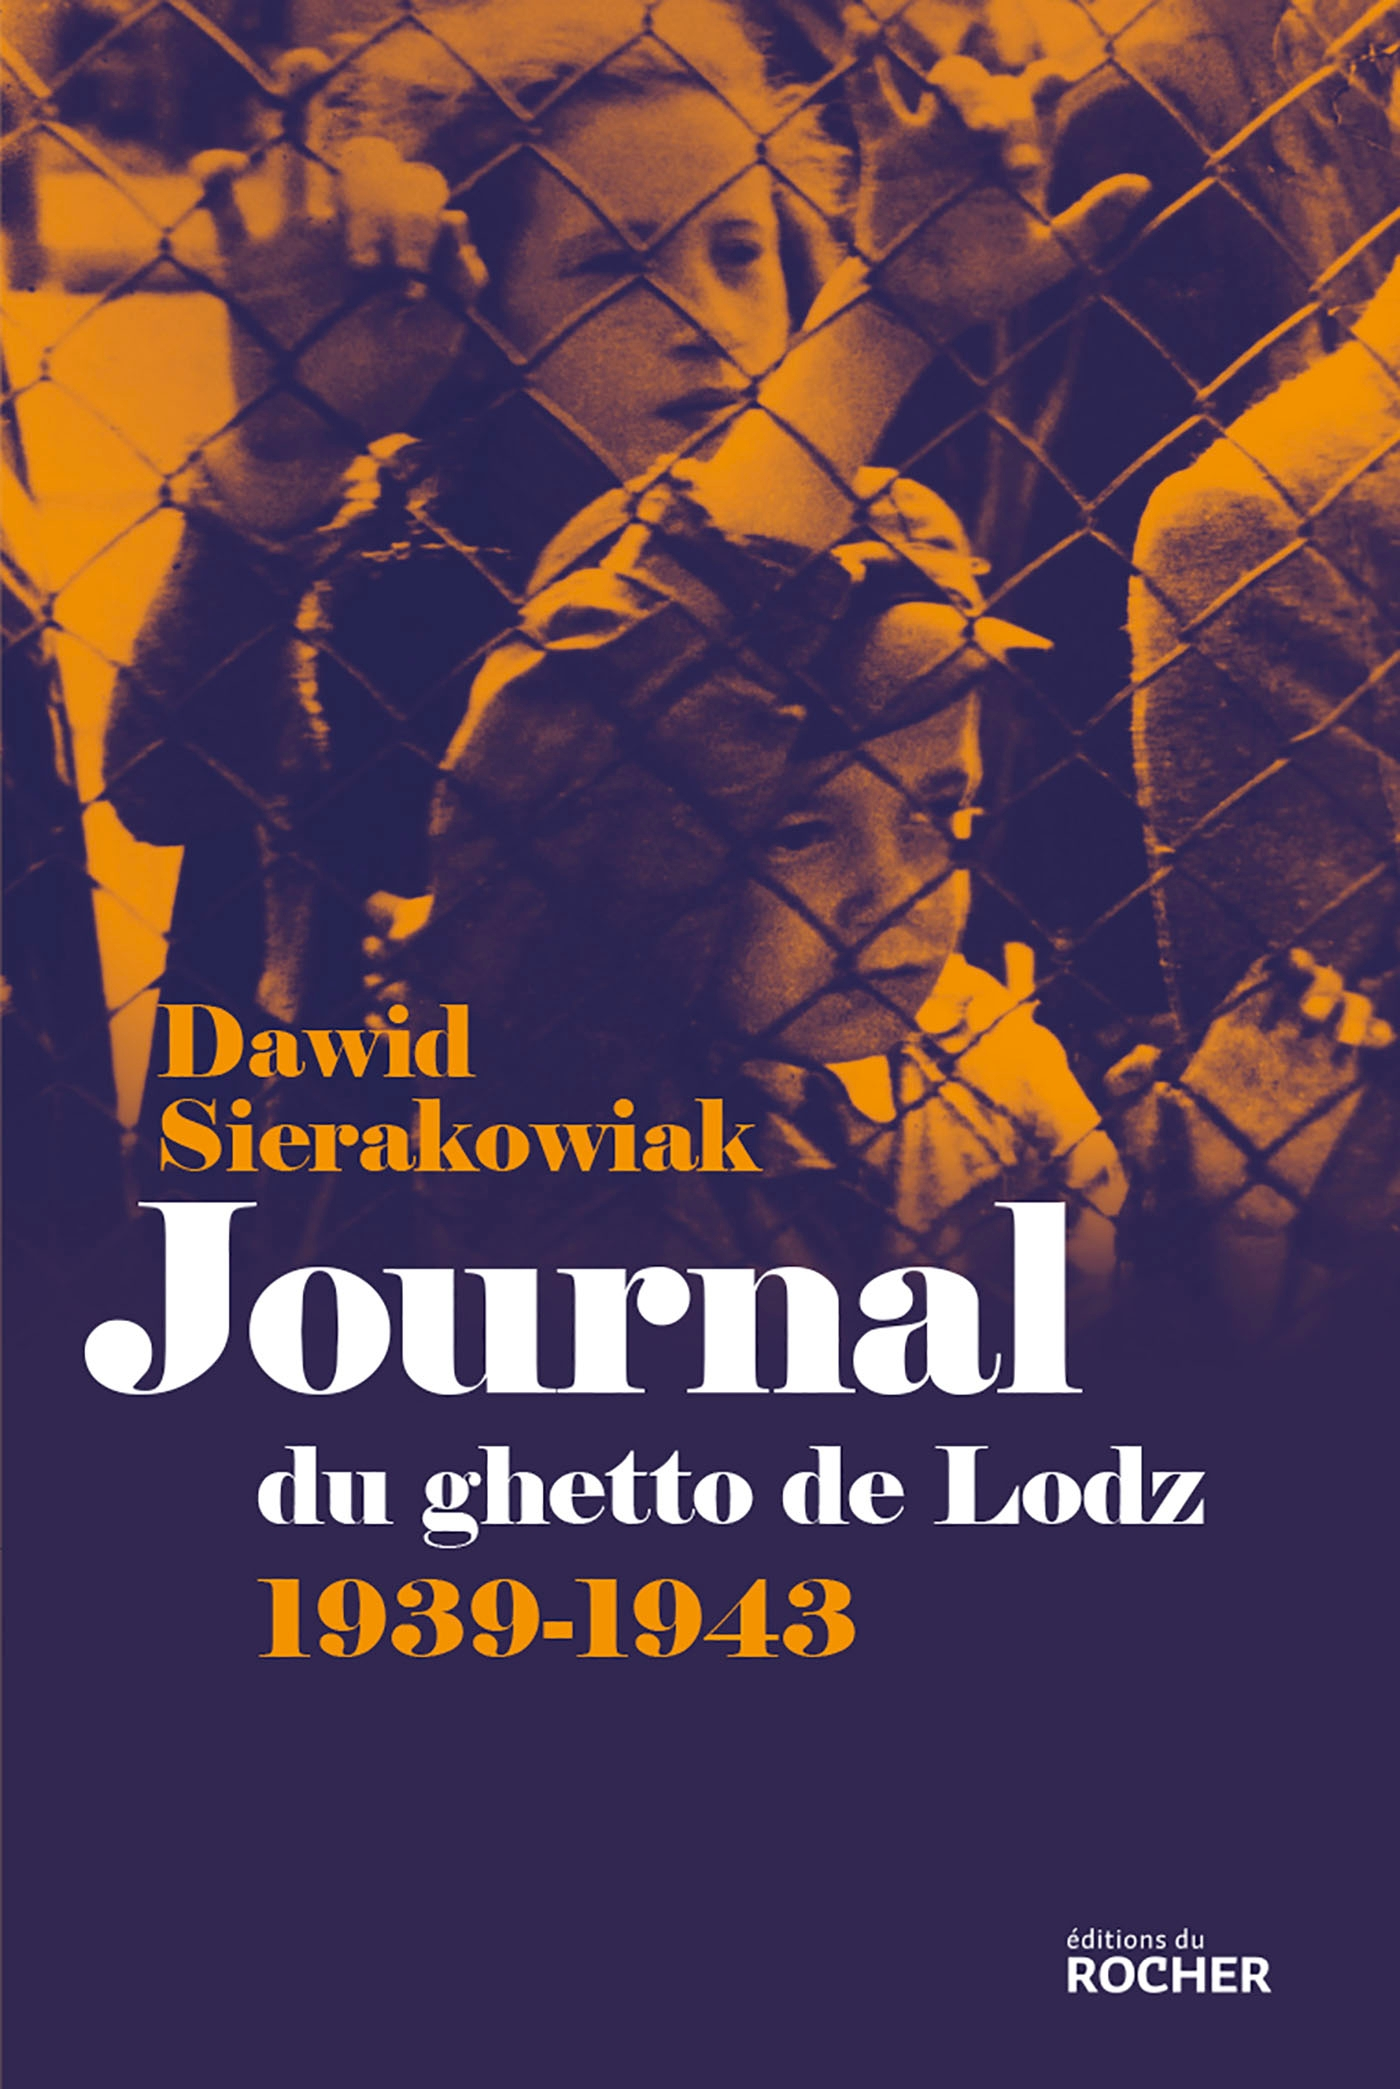 Journal du ghetto de Lodz